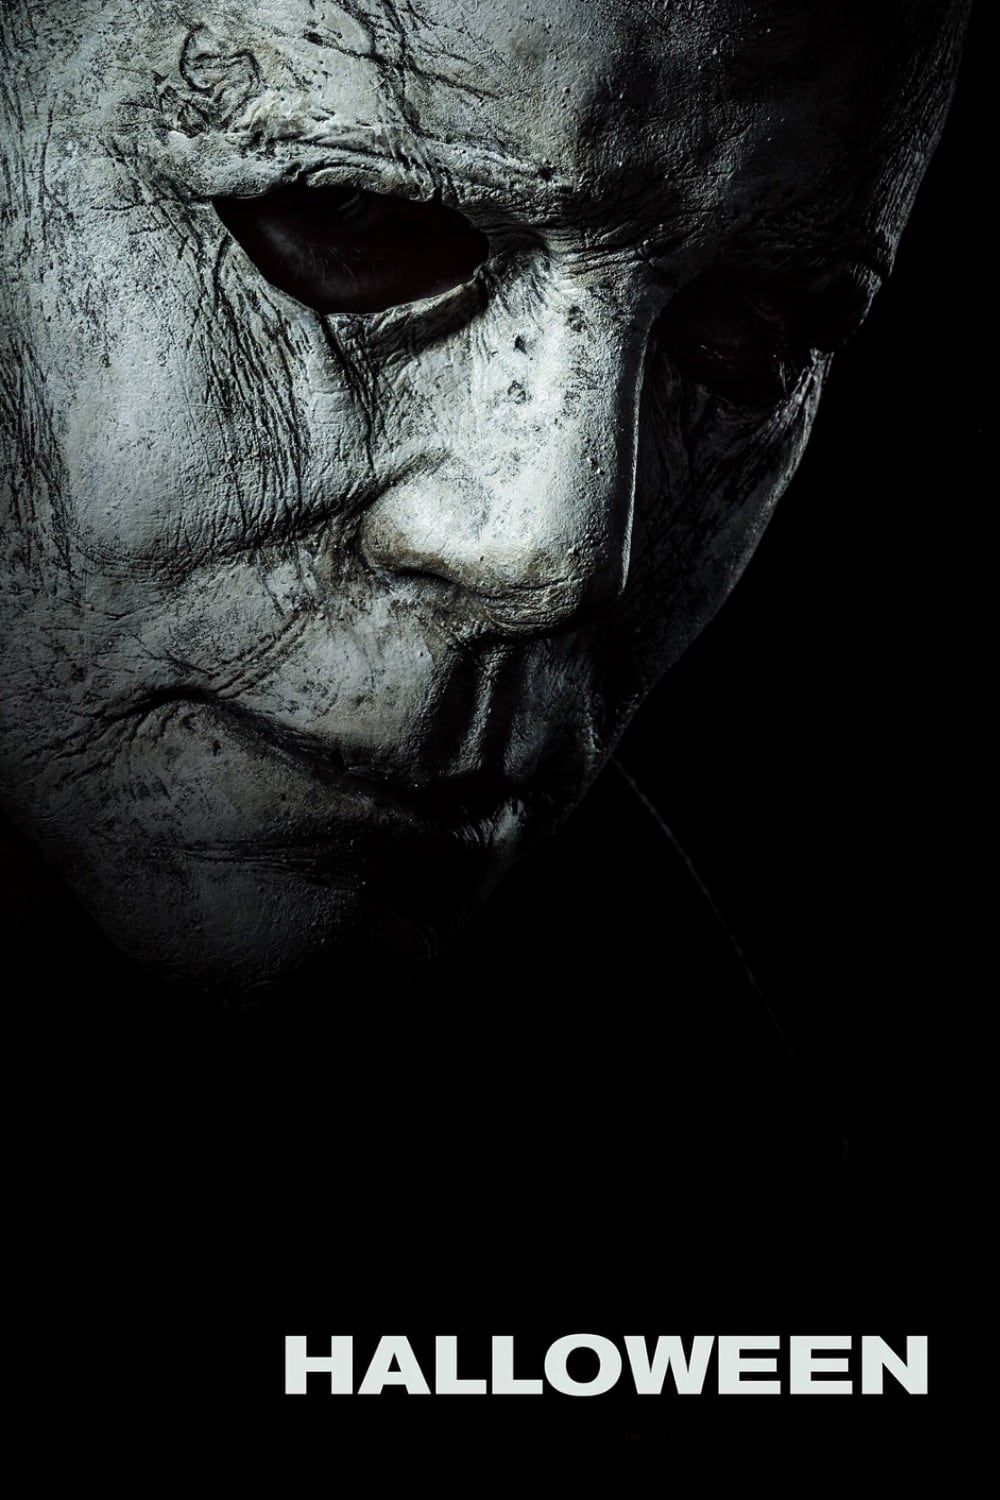 Pin By Mariana Hernandes On Edmon New Halloween Movie Halloween Movie Poster Halloween Film